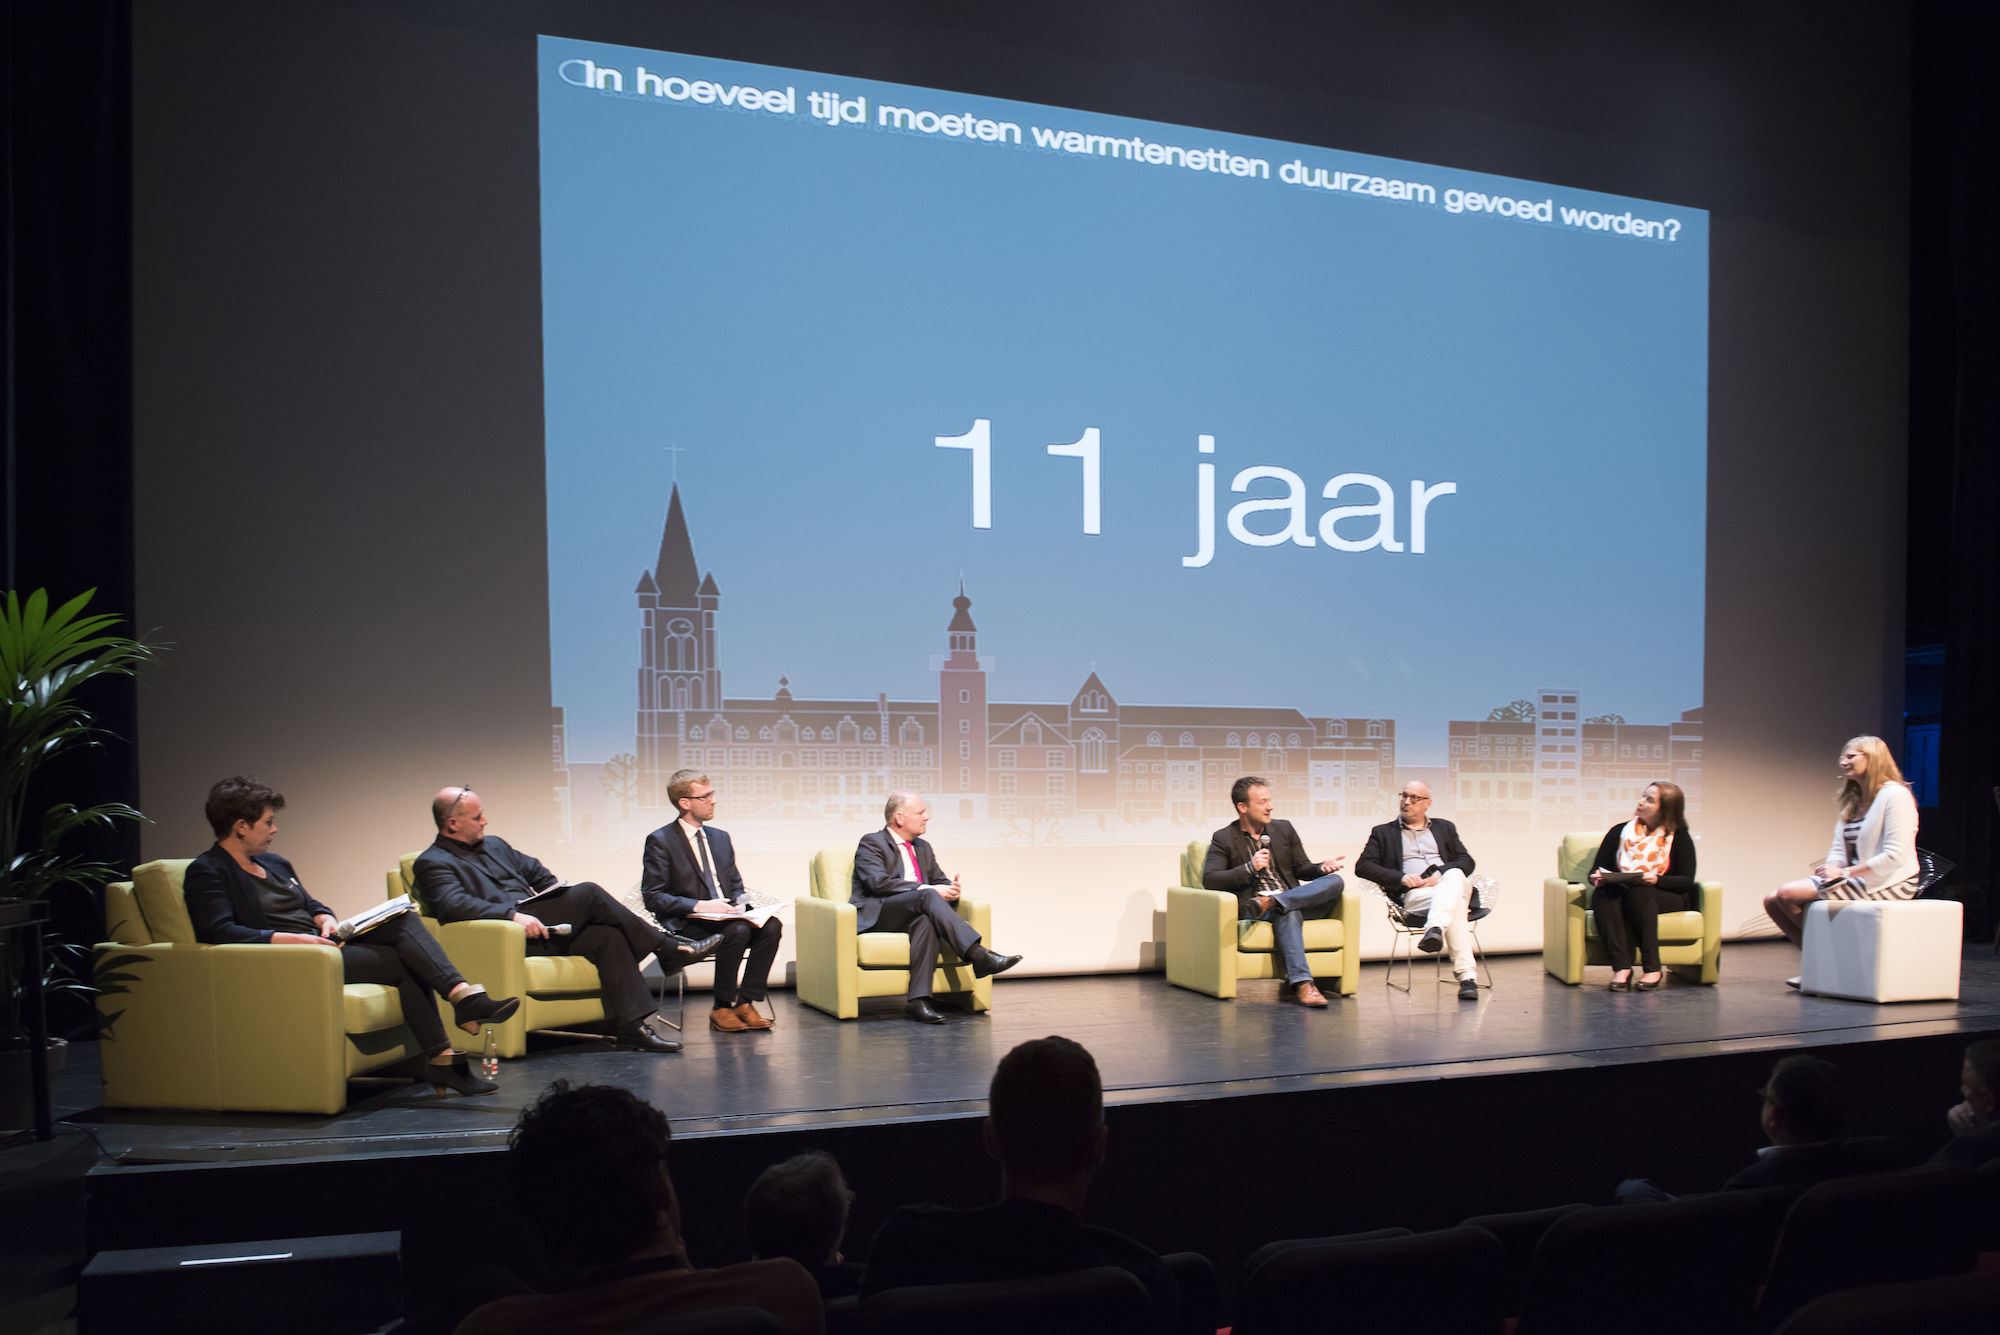 20180424_warmtecongres_00125.jpg